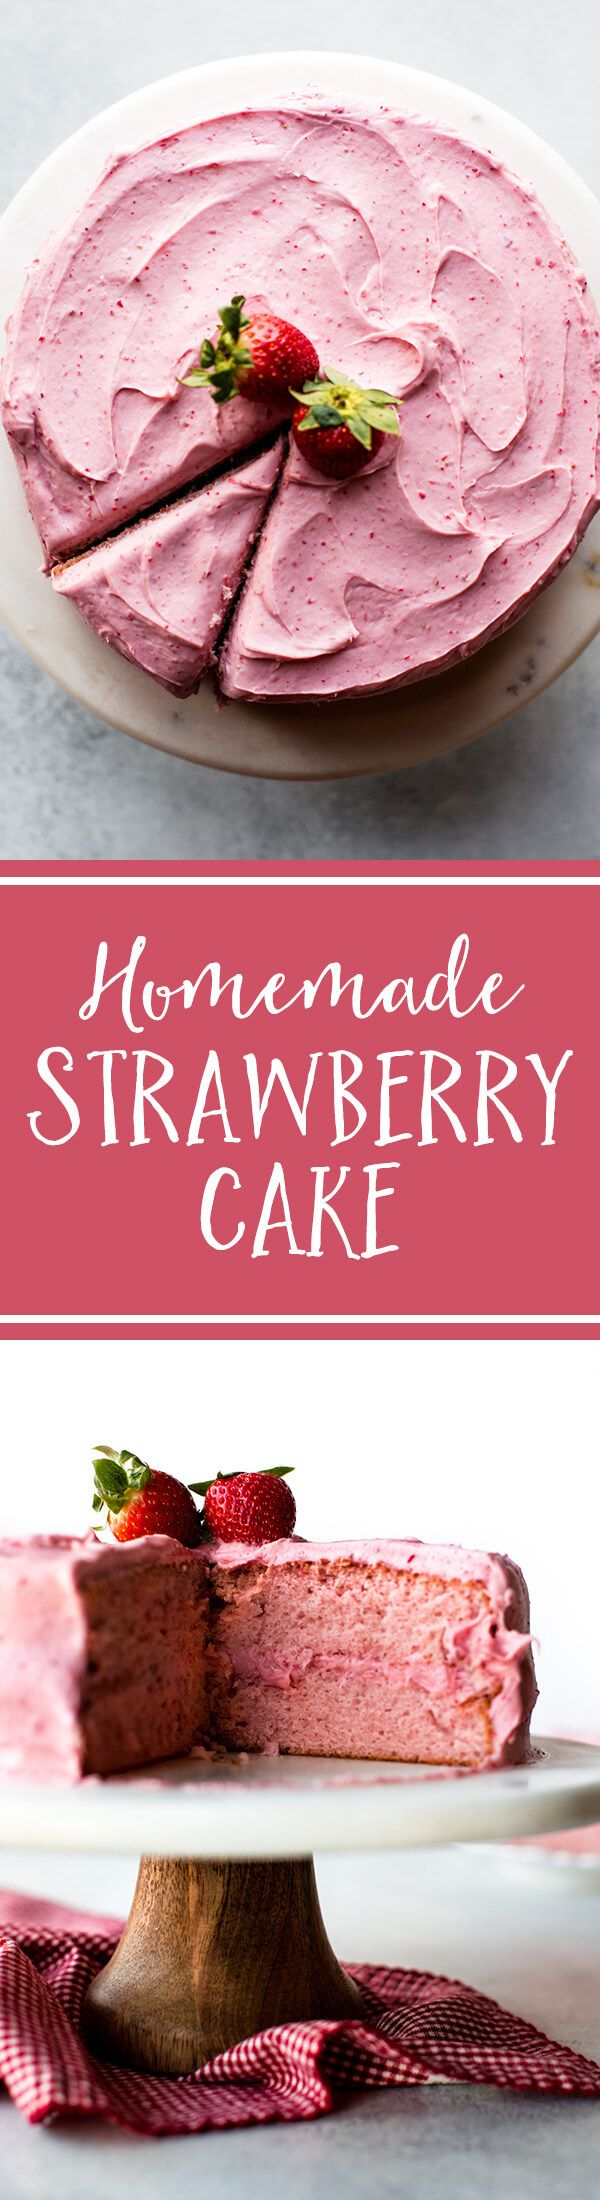 Sweet strawberry cake topped with strawberry frosting made with fresh strawberries! No artificial flavors. Homemade strawberry cake on sallysbakingaddiction.com